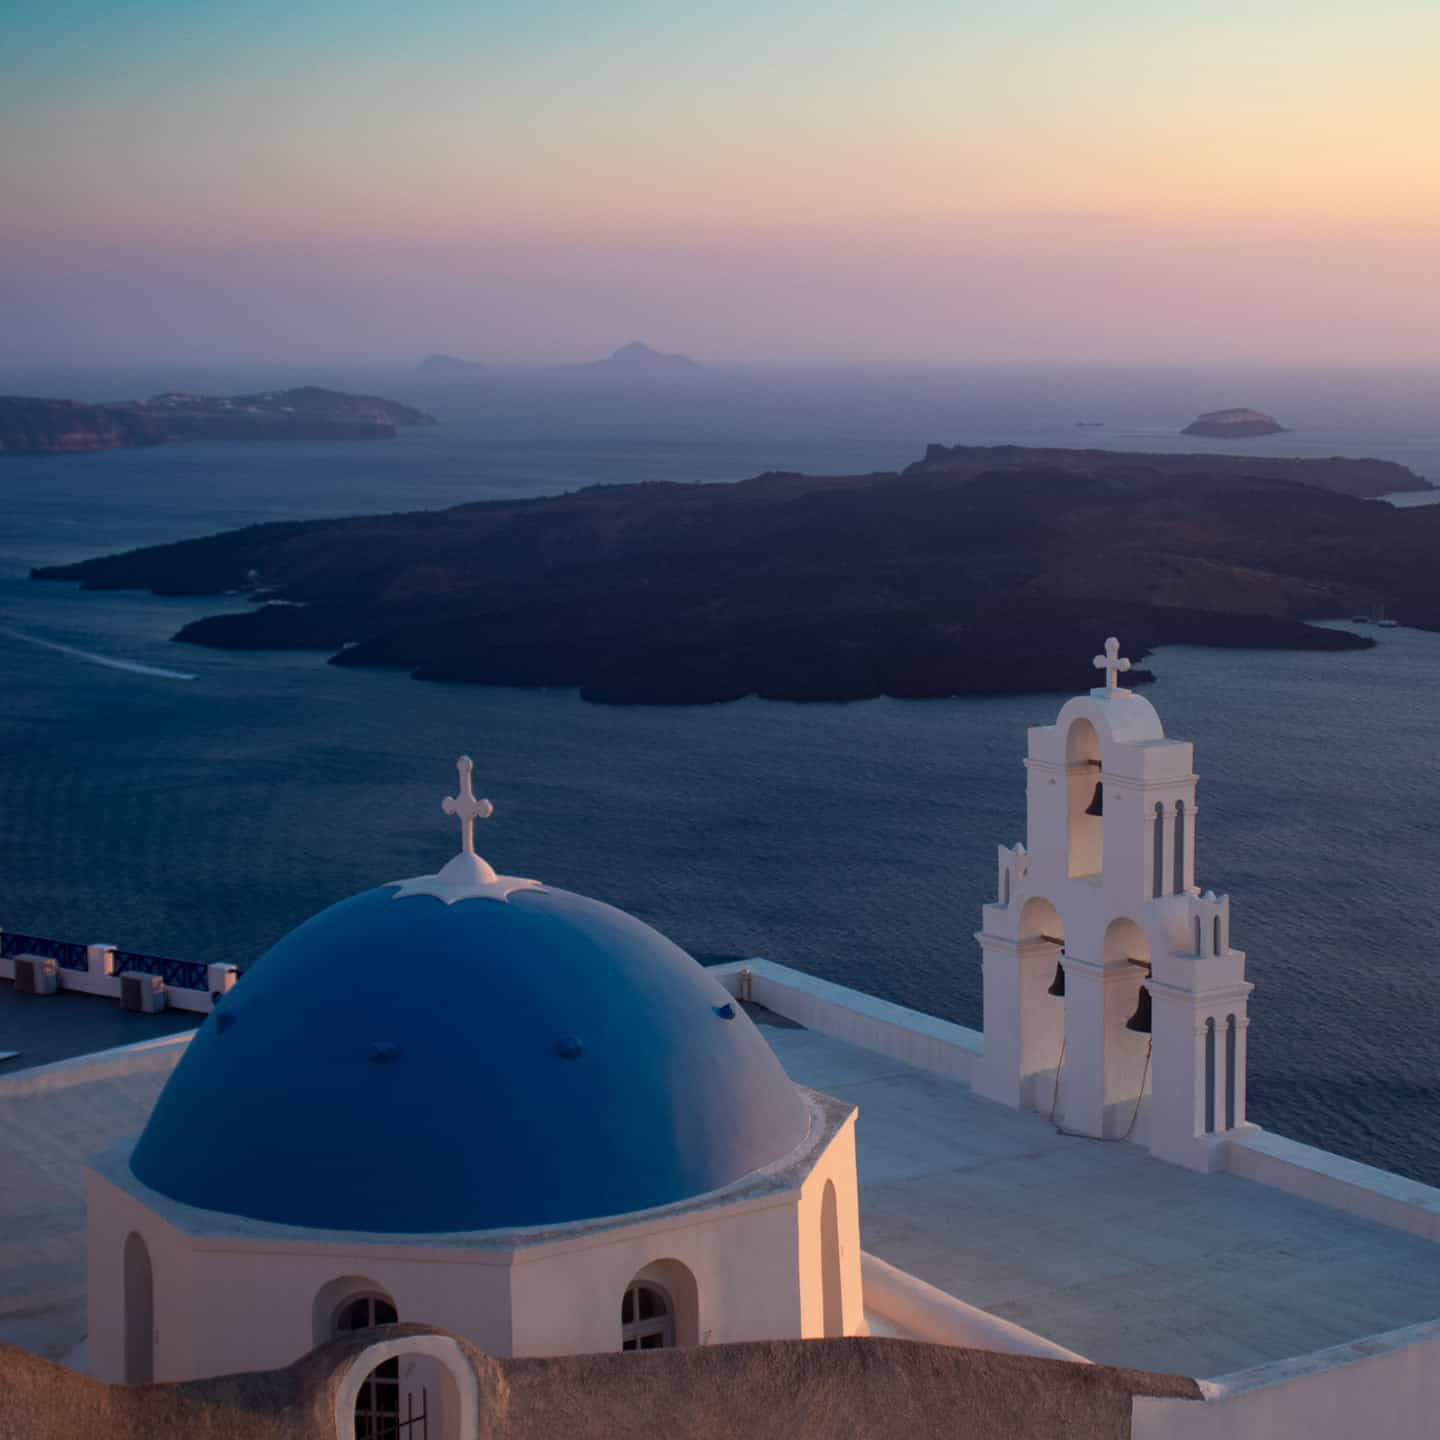 Image of the Three Bells of Fira church Santorini Greece at sunset